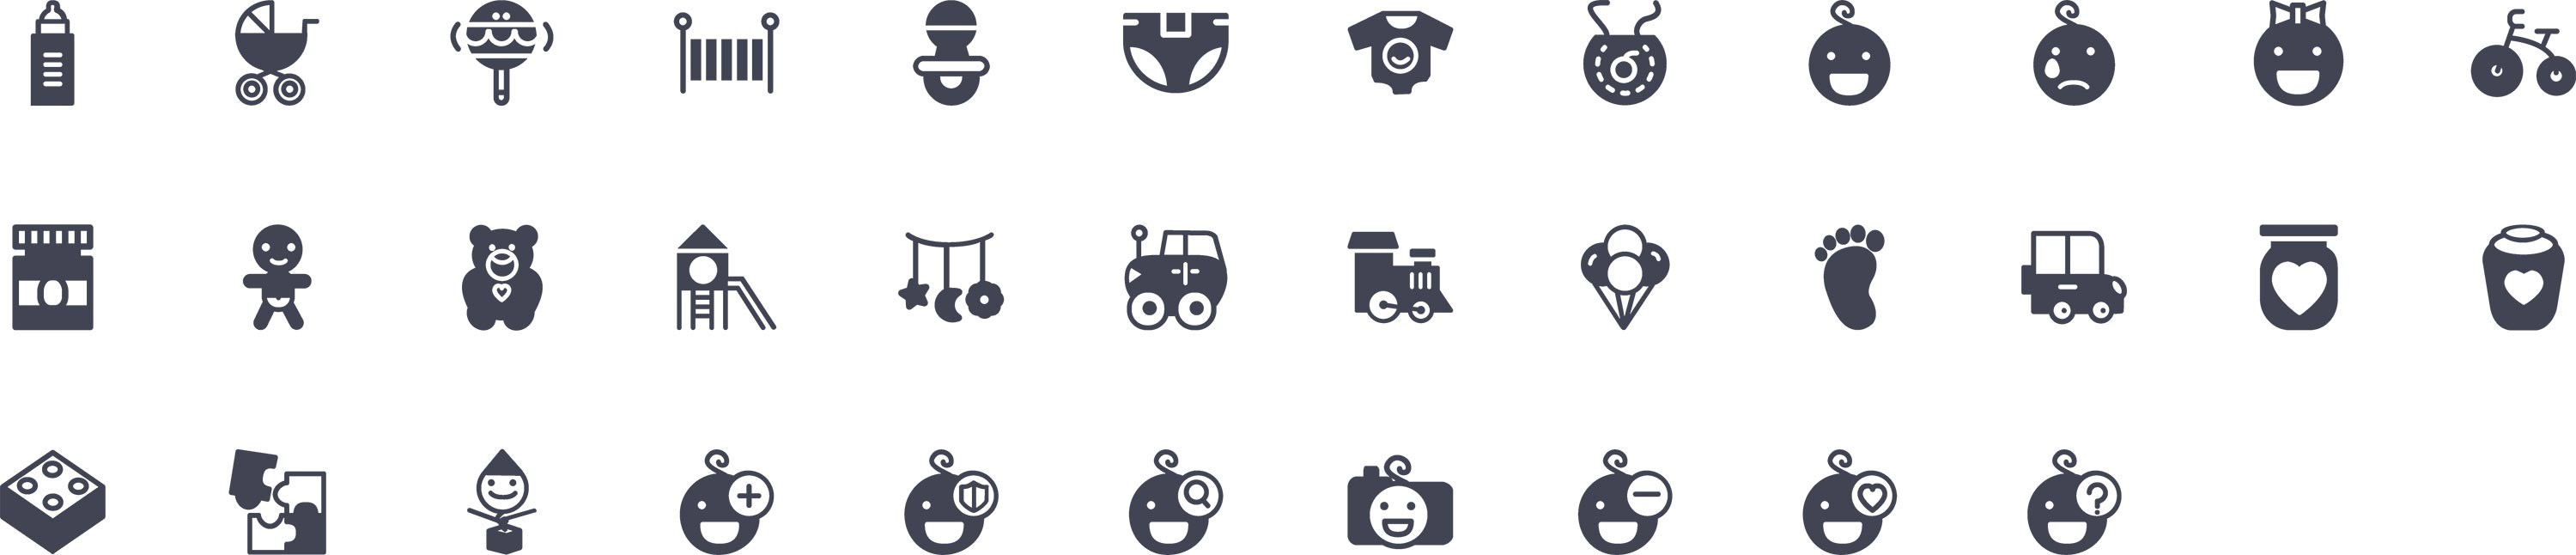 Baby Glyph Icons